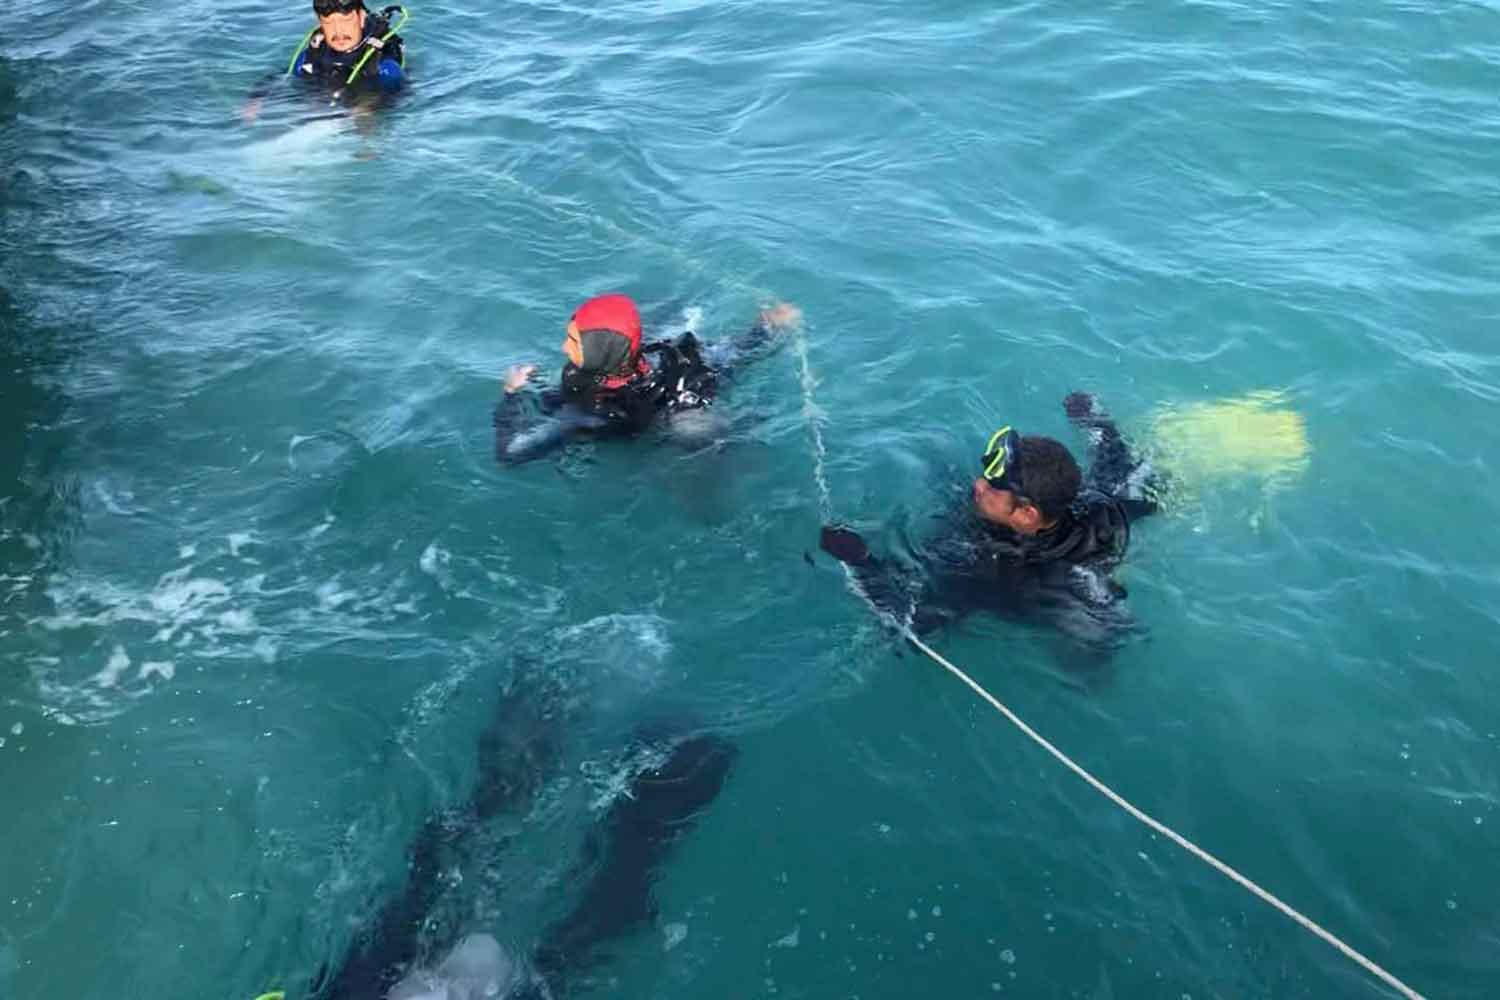 Divers from MS Service Co work to retrieve the bodies of the last two people missing after Raja 4 ferry capsized off Koh Samui island on Aug 1. (Photo: Supapong Chaolan)